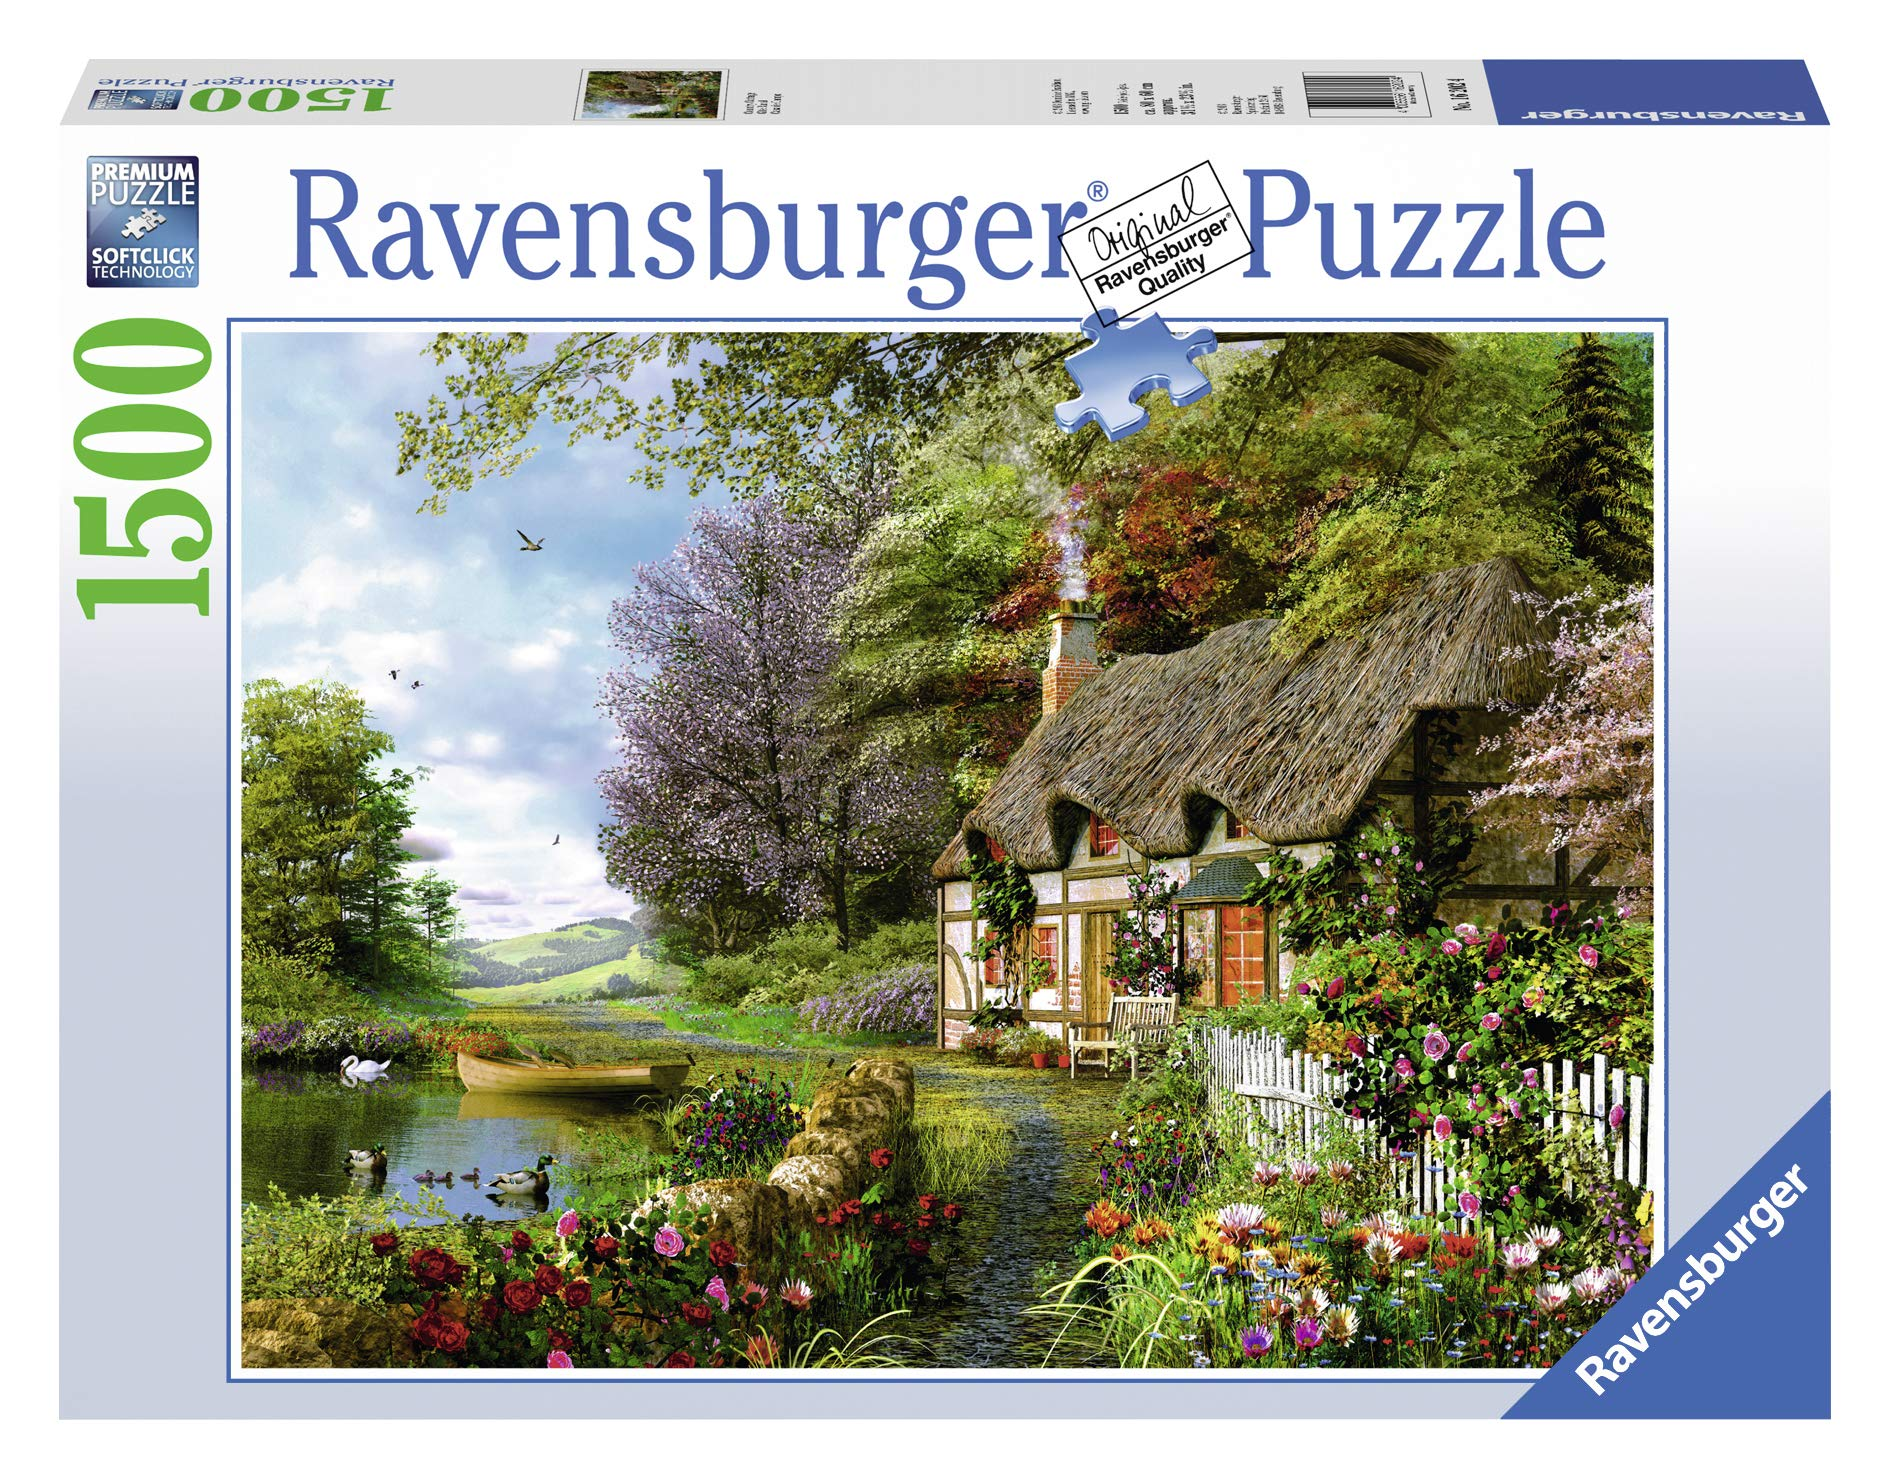 Ravensburger Country Cottage 1500 Piece Jigsaw Puzzle for Adults – Softclick Technology Means Pieces Fit Together Perfectly